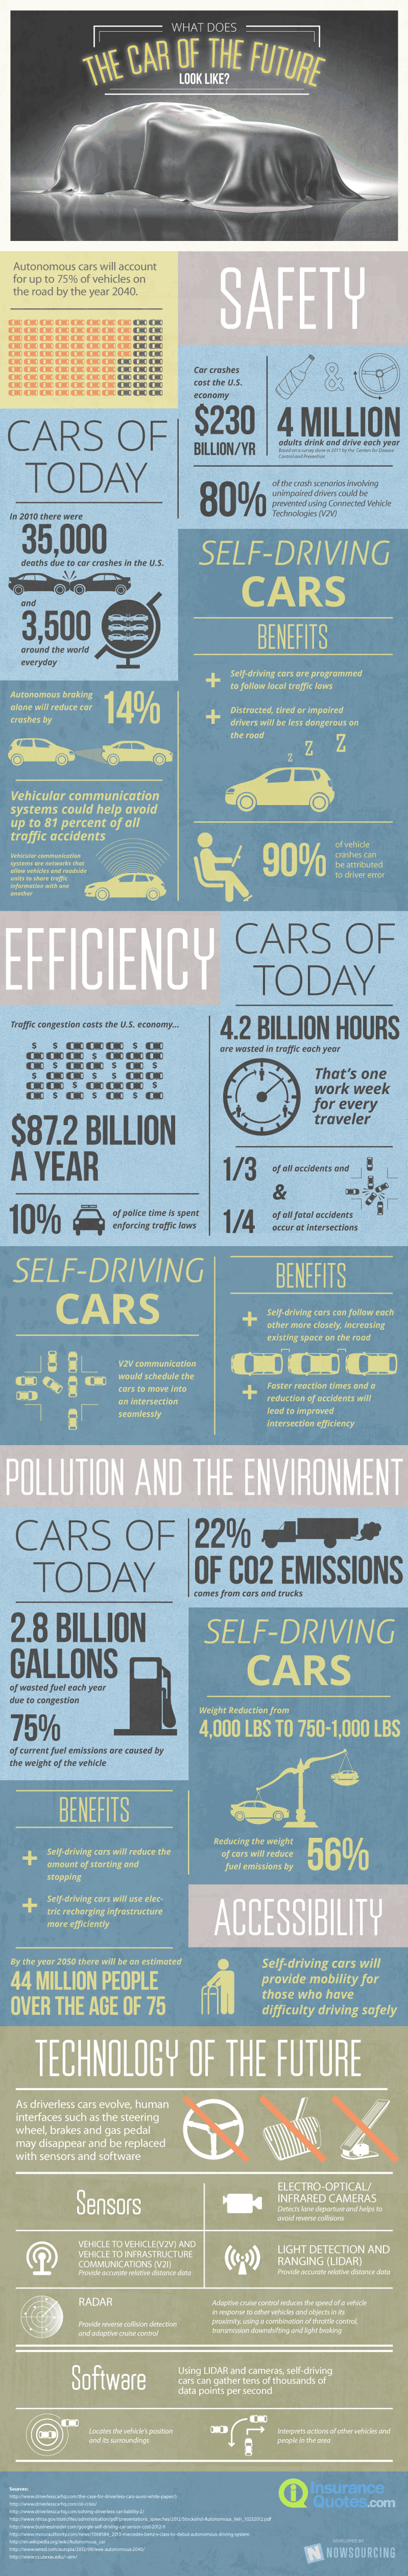 The Car of Tomorrow [Infographic] image self driving cars 800